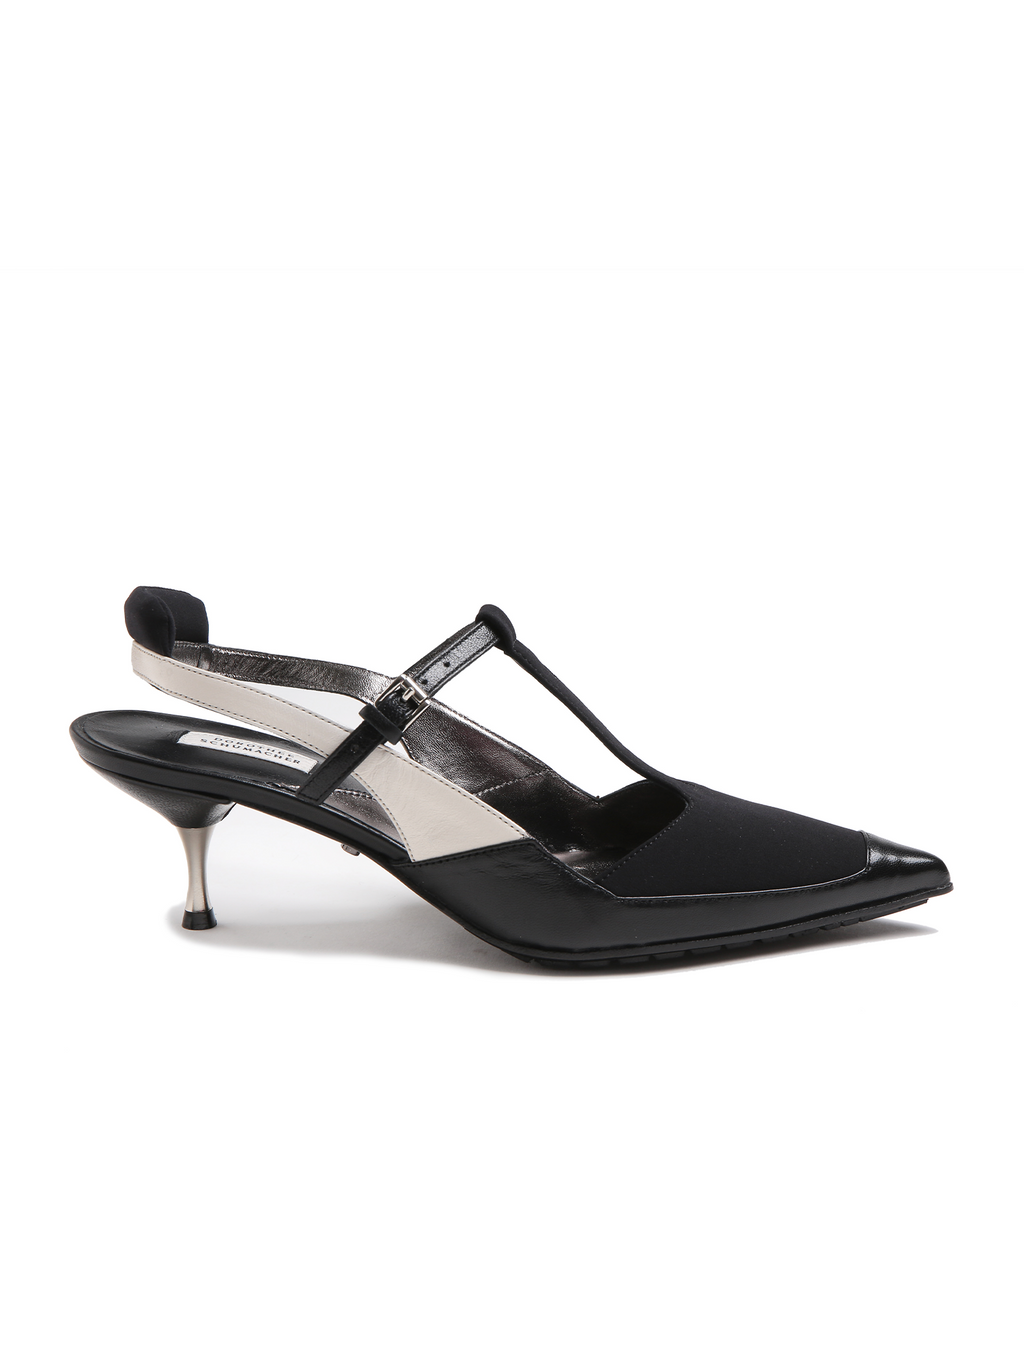 Dorothee Schumacher Touch of Sport Sporty Kitten Heel